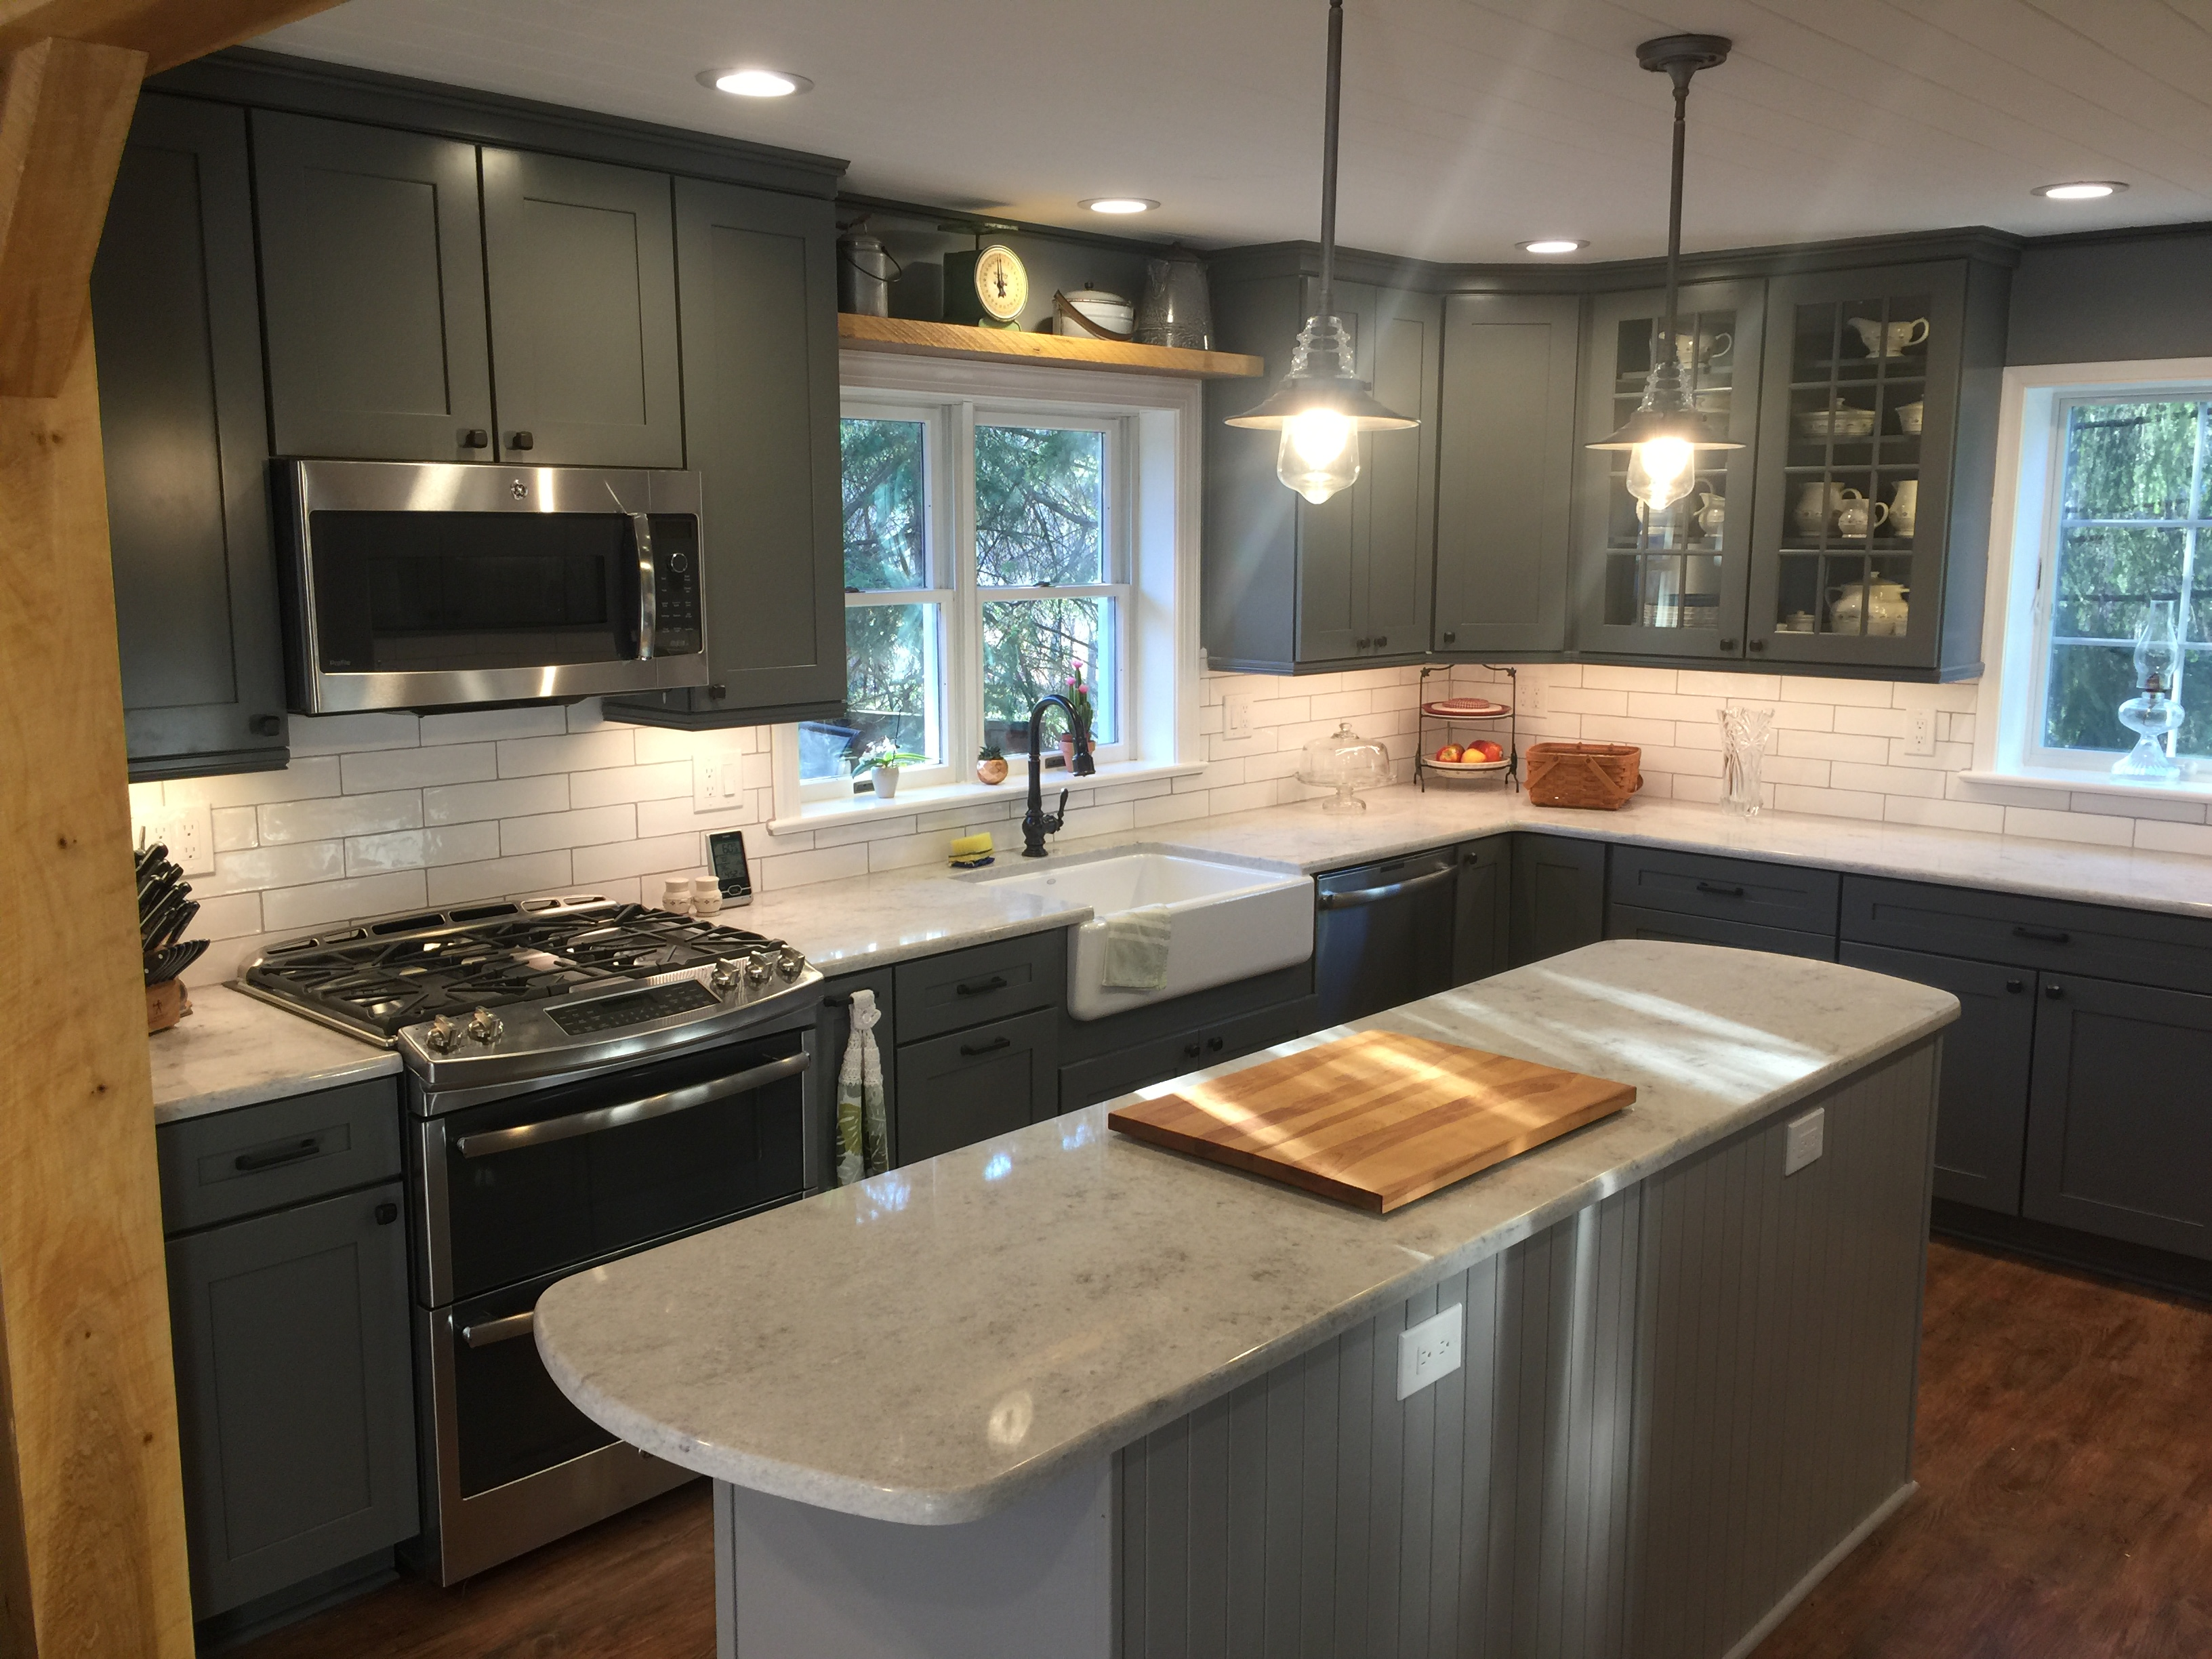 Kitchen Relocation and Remodel